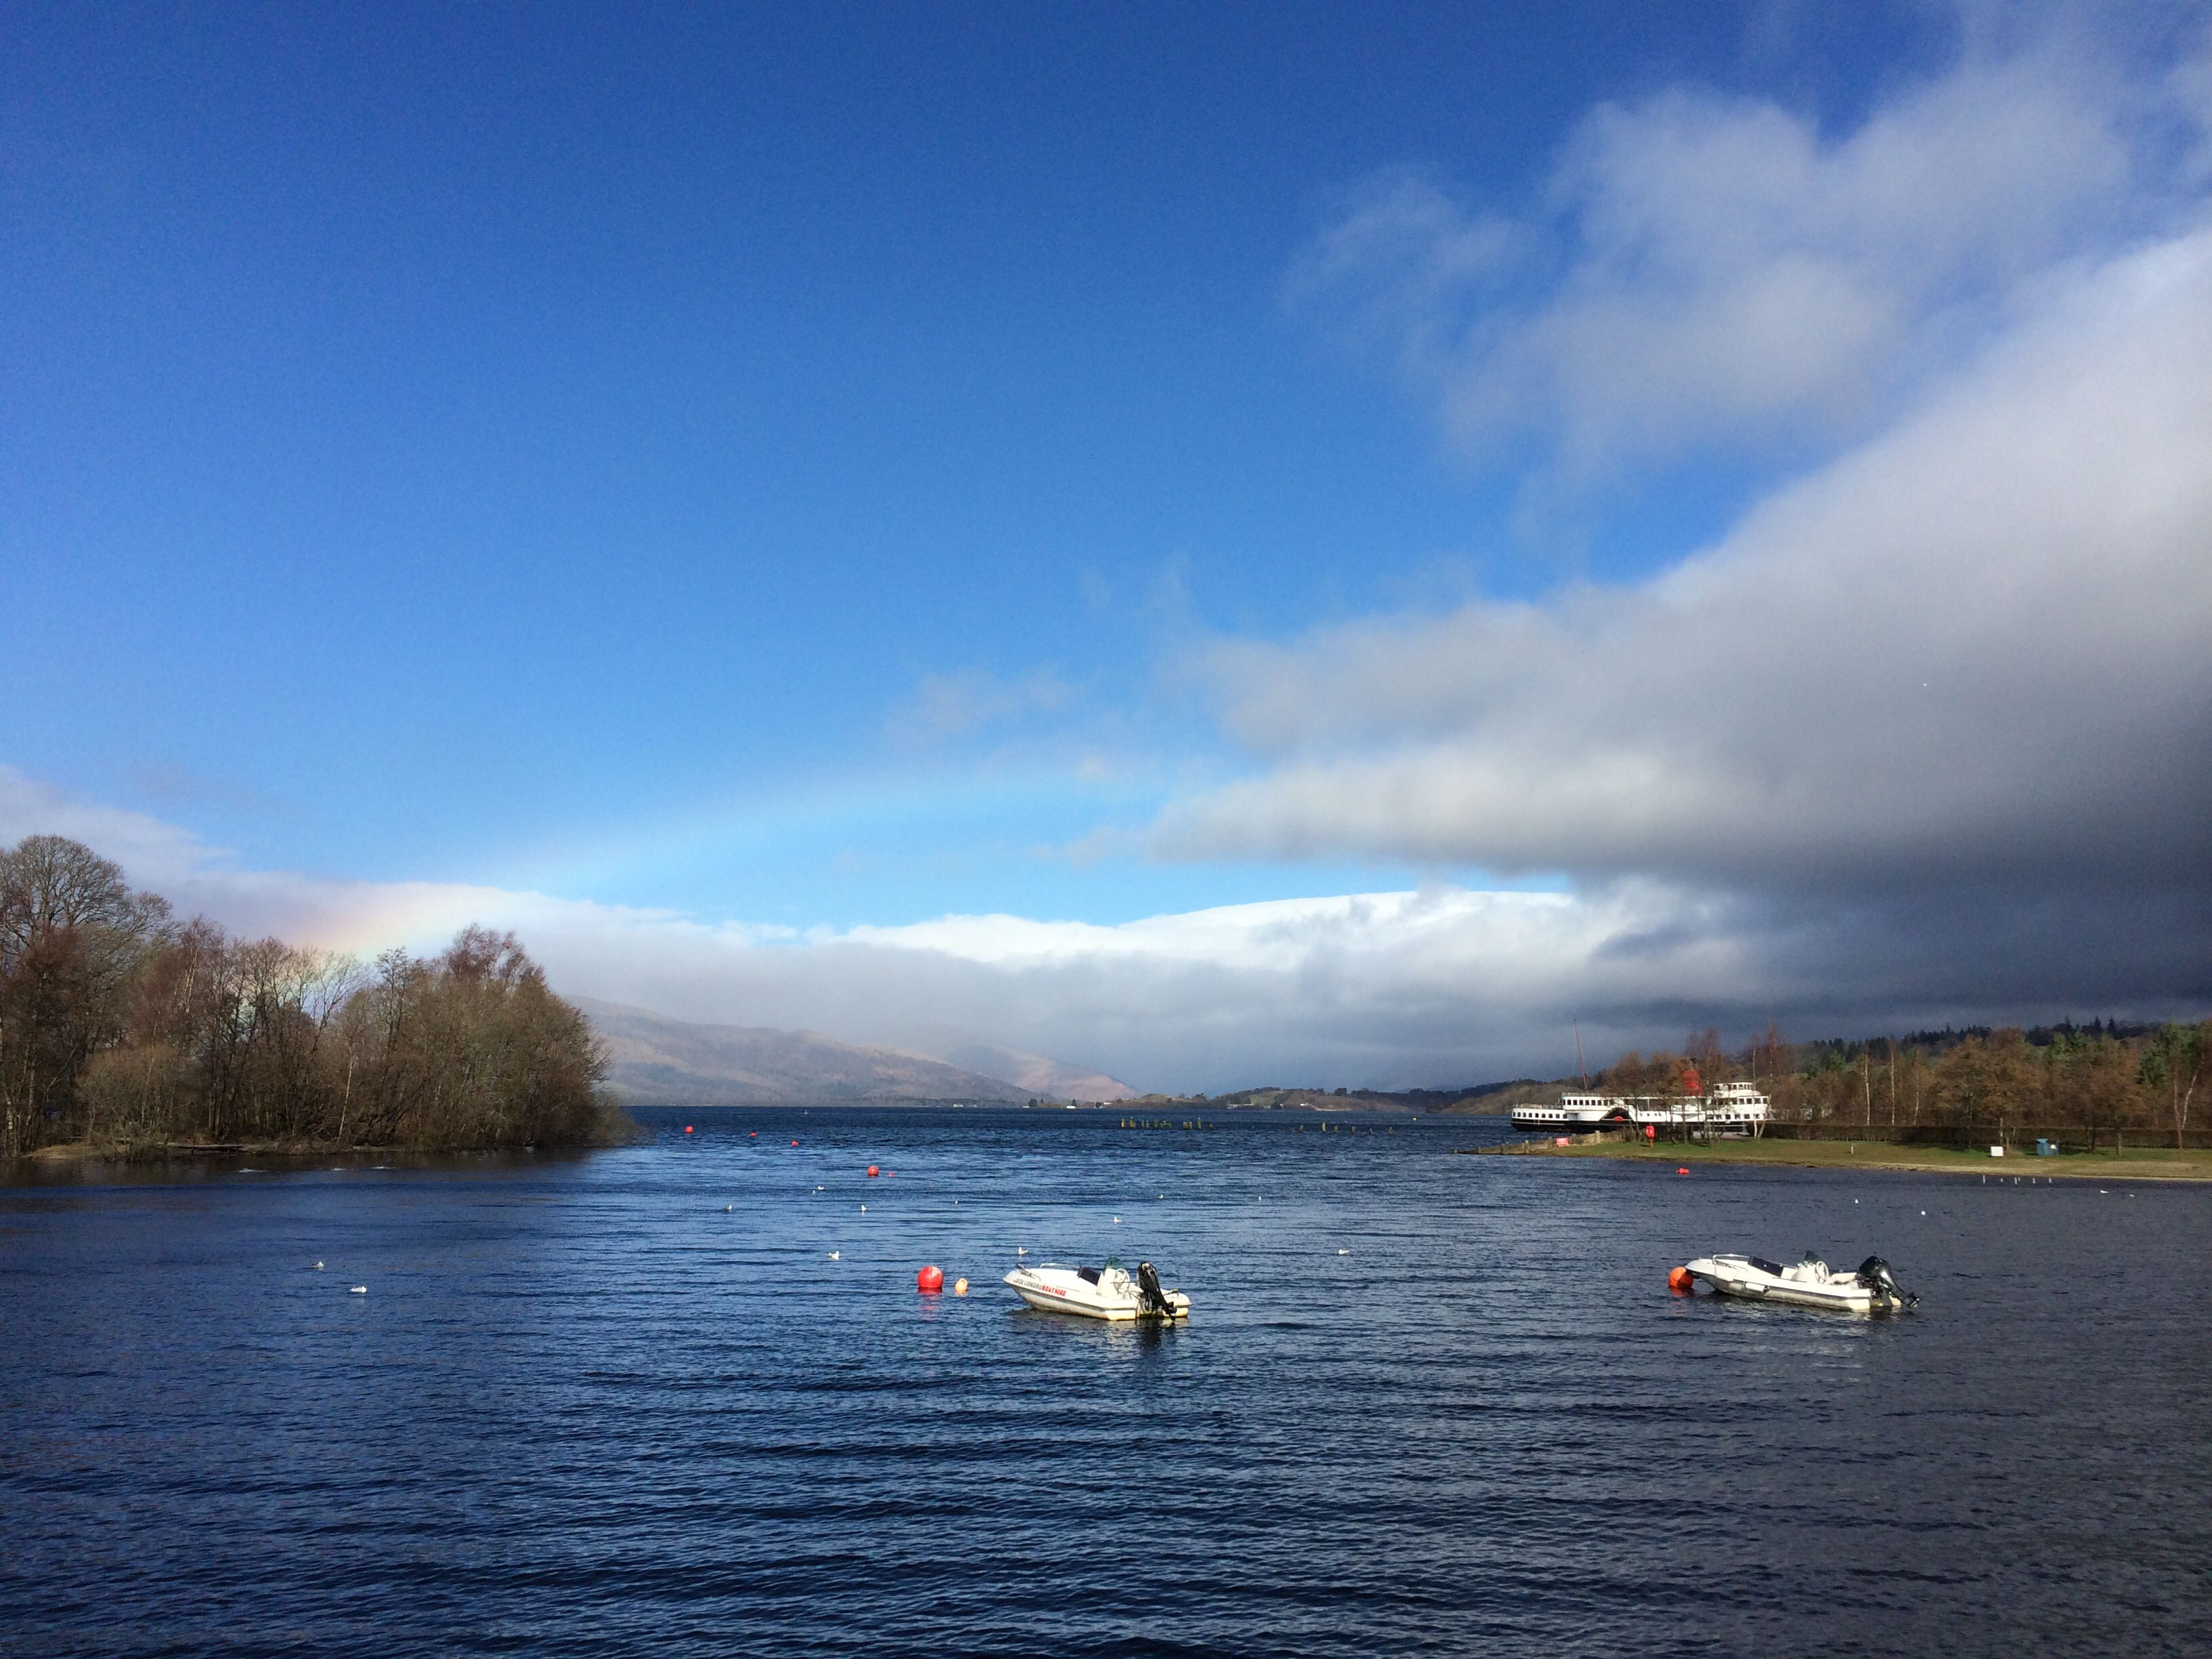 Taken at Loch Lomond on 16/3/14 by me using camera on iPhone 5s